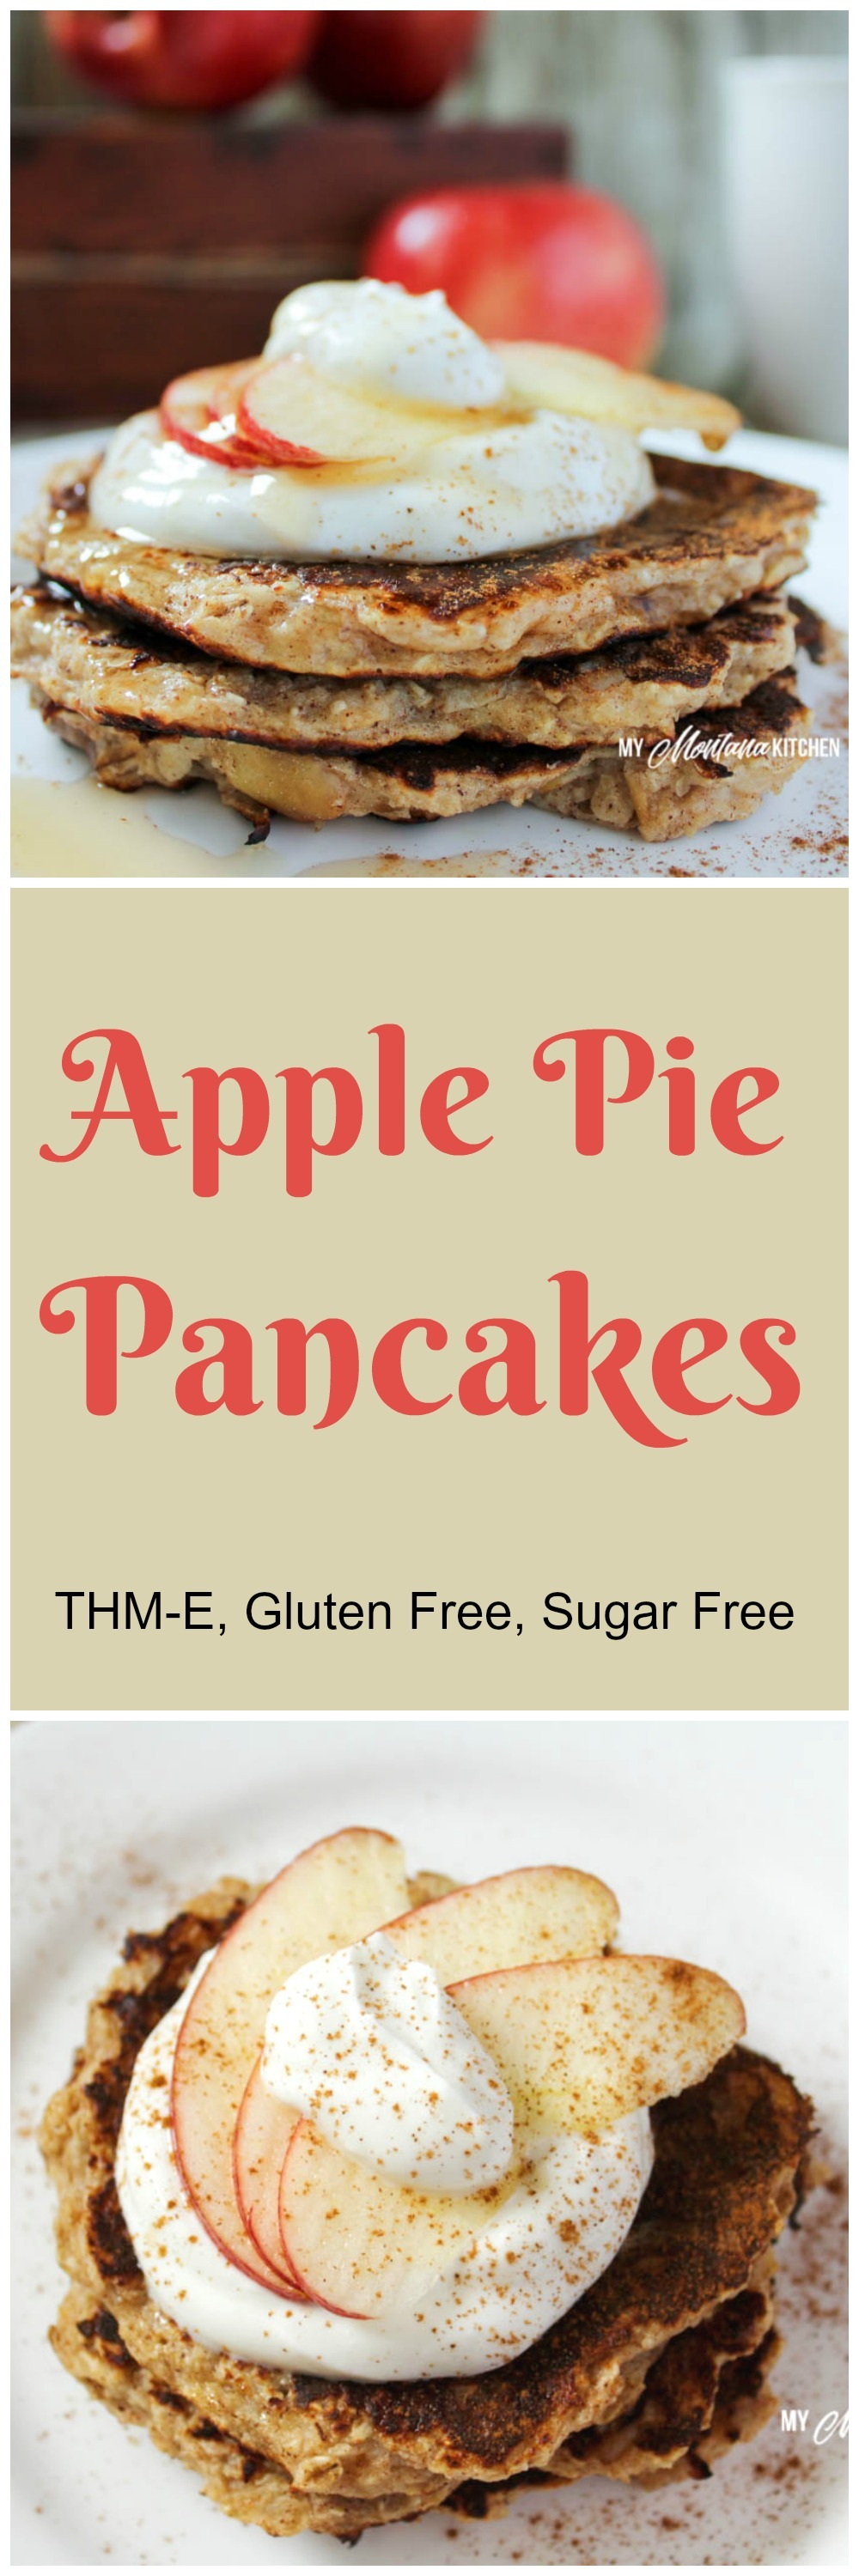 Apple Pie Pancakes (THM-E, Low Fat, Sugar Free)